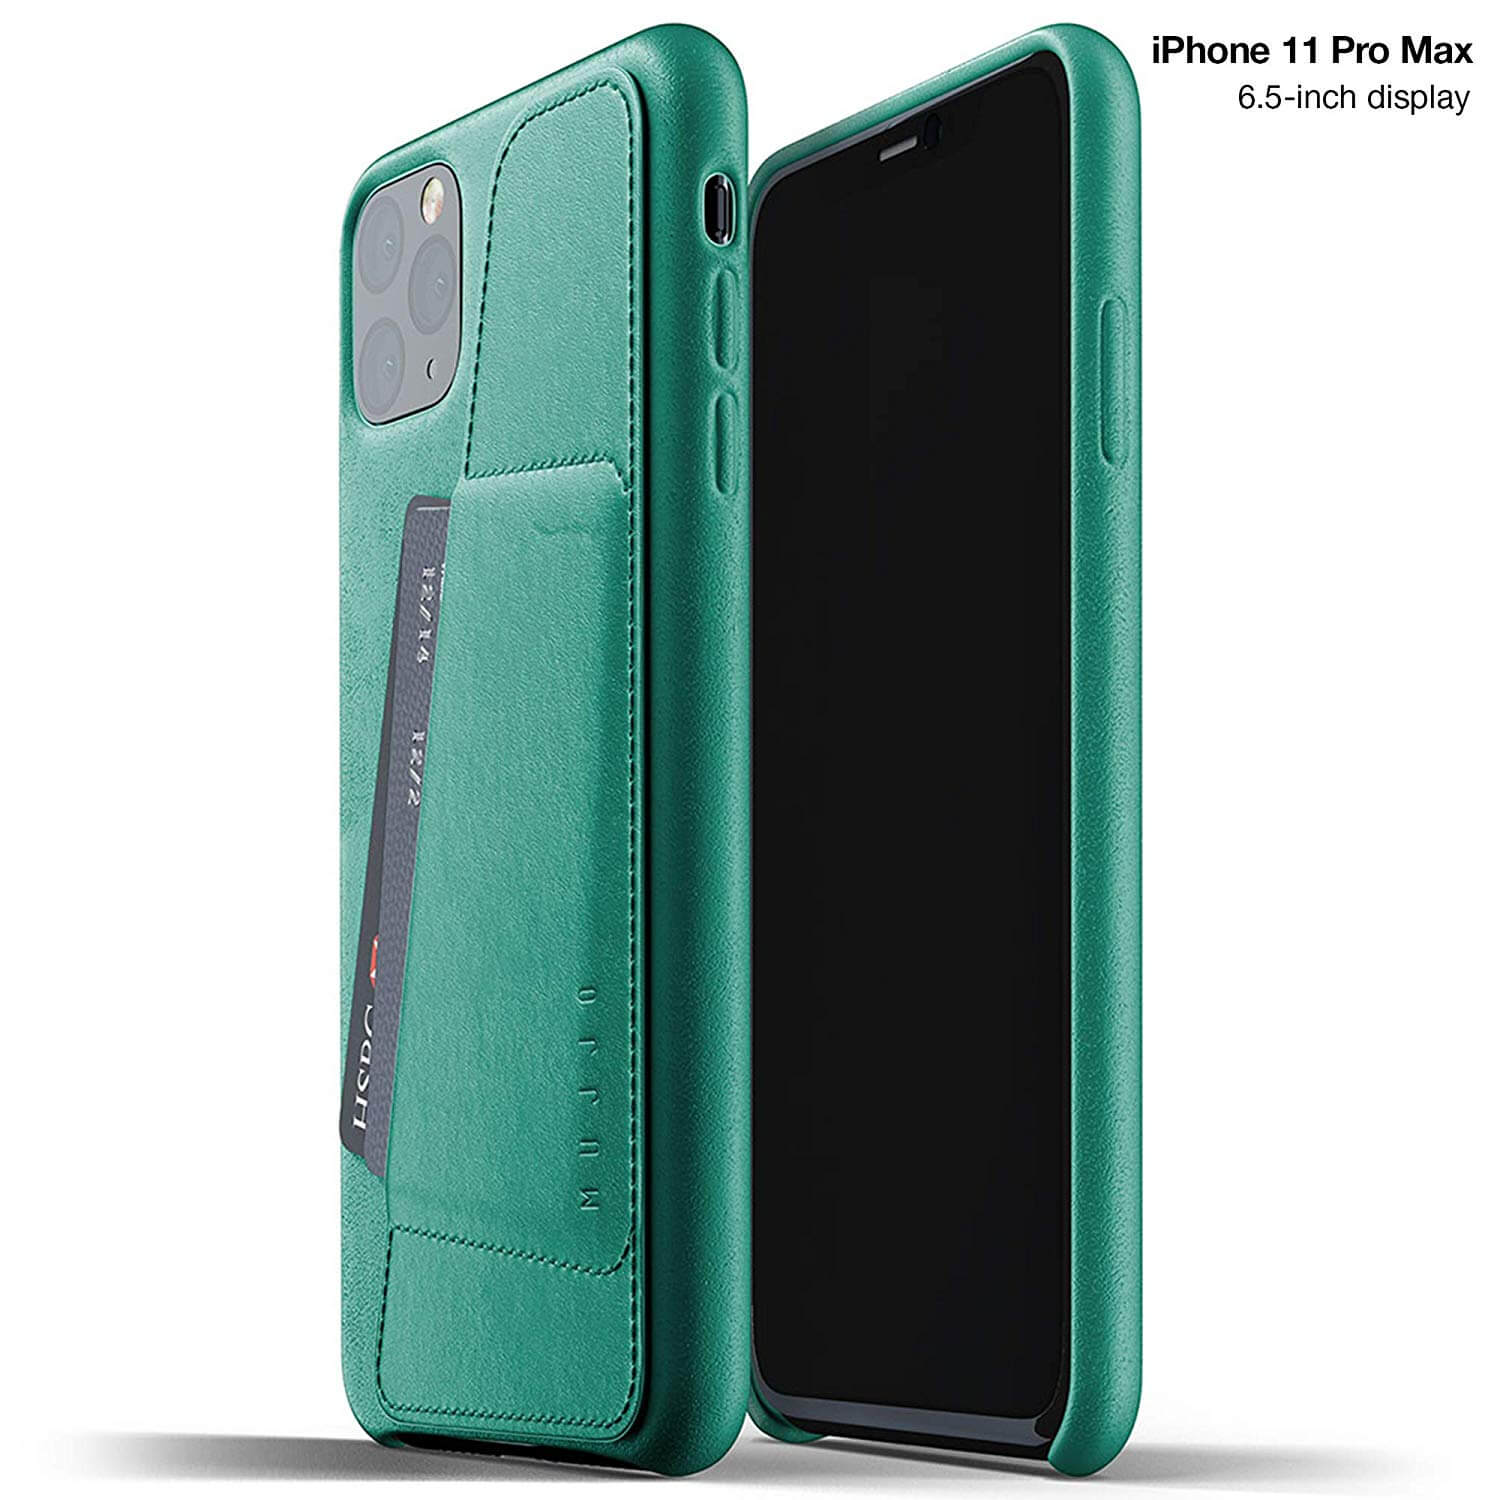 Mujjo Leather Wallet Case for iPhone 11 Pro Max (alpine green)